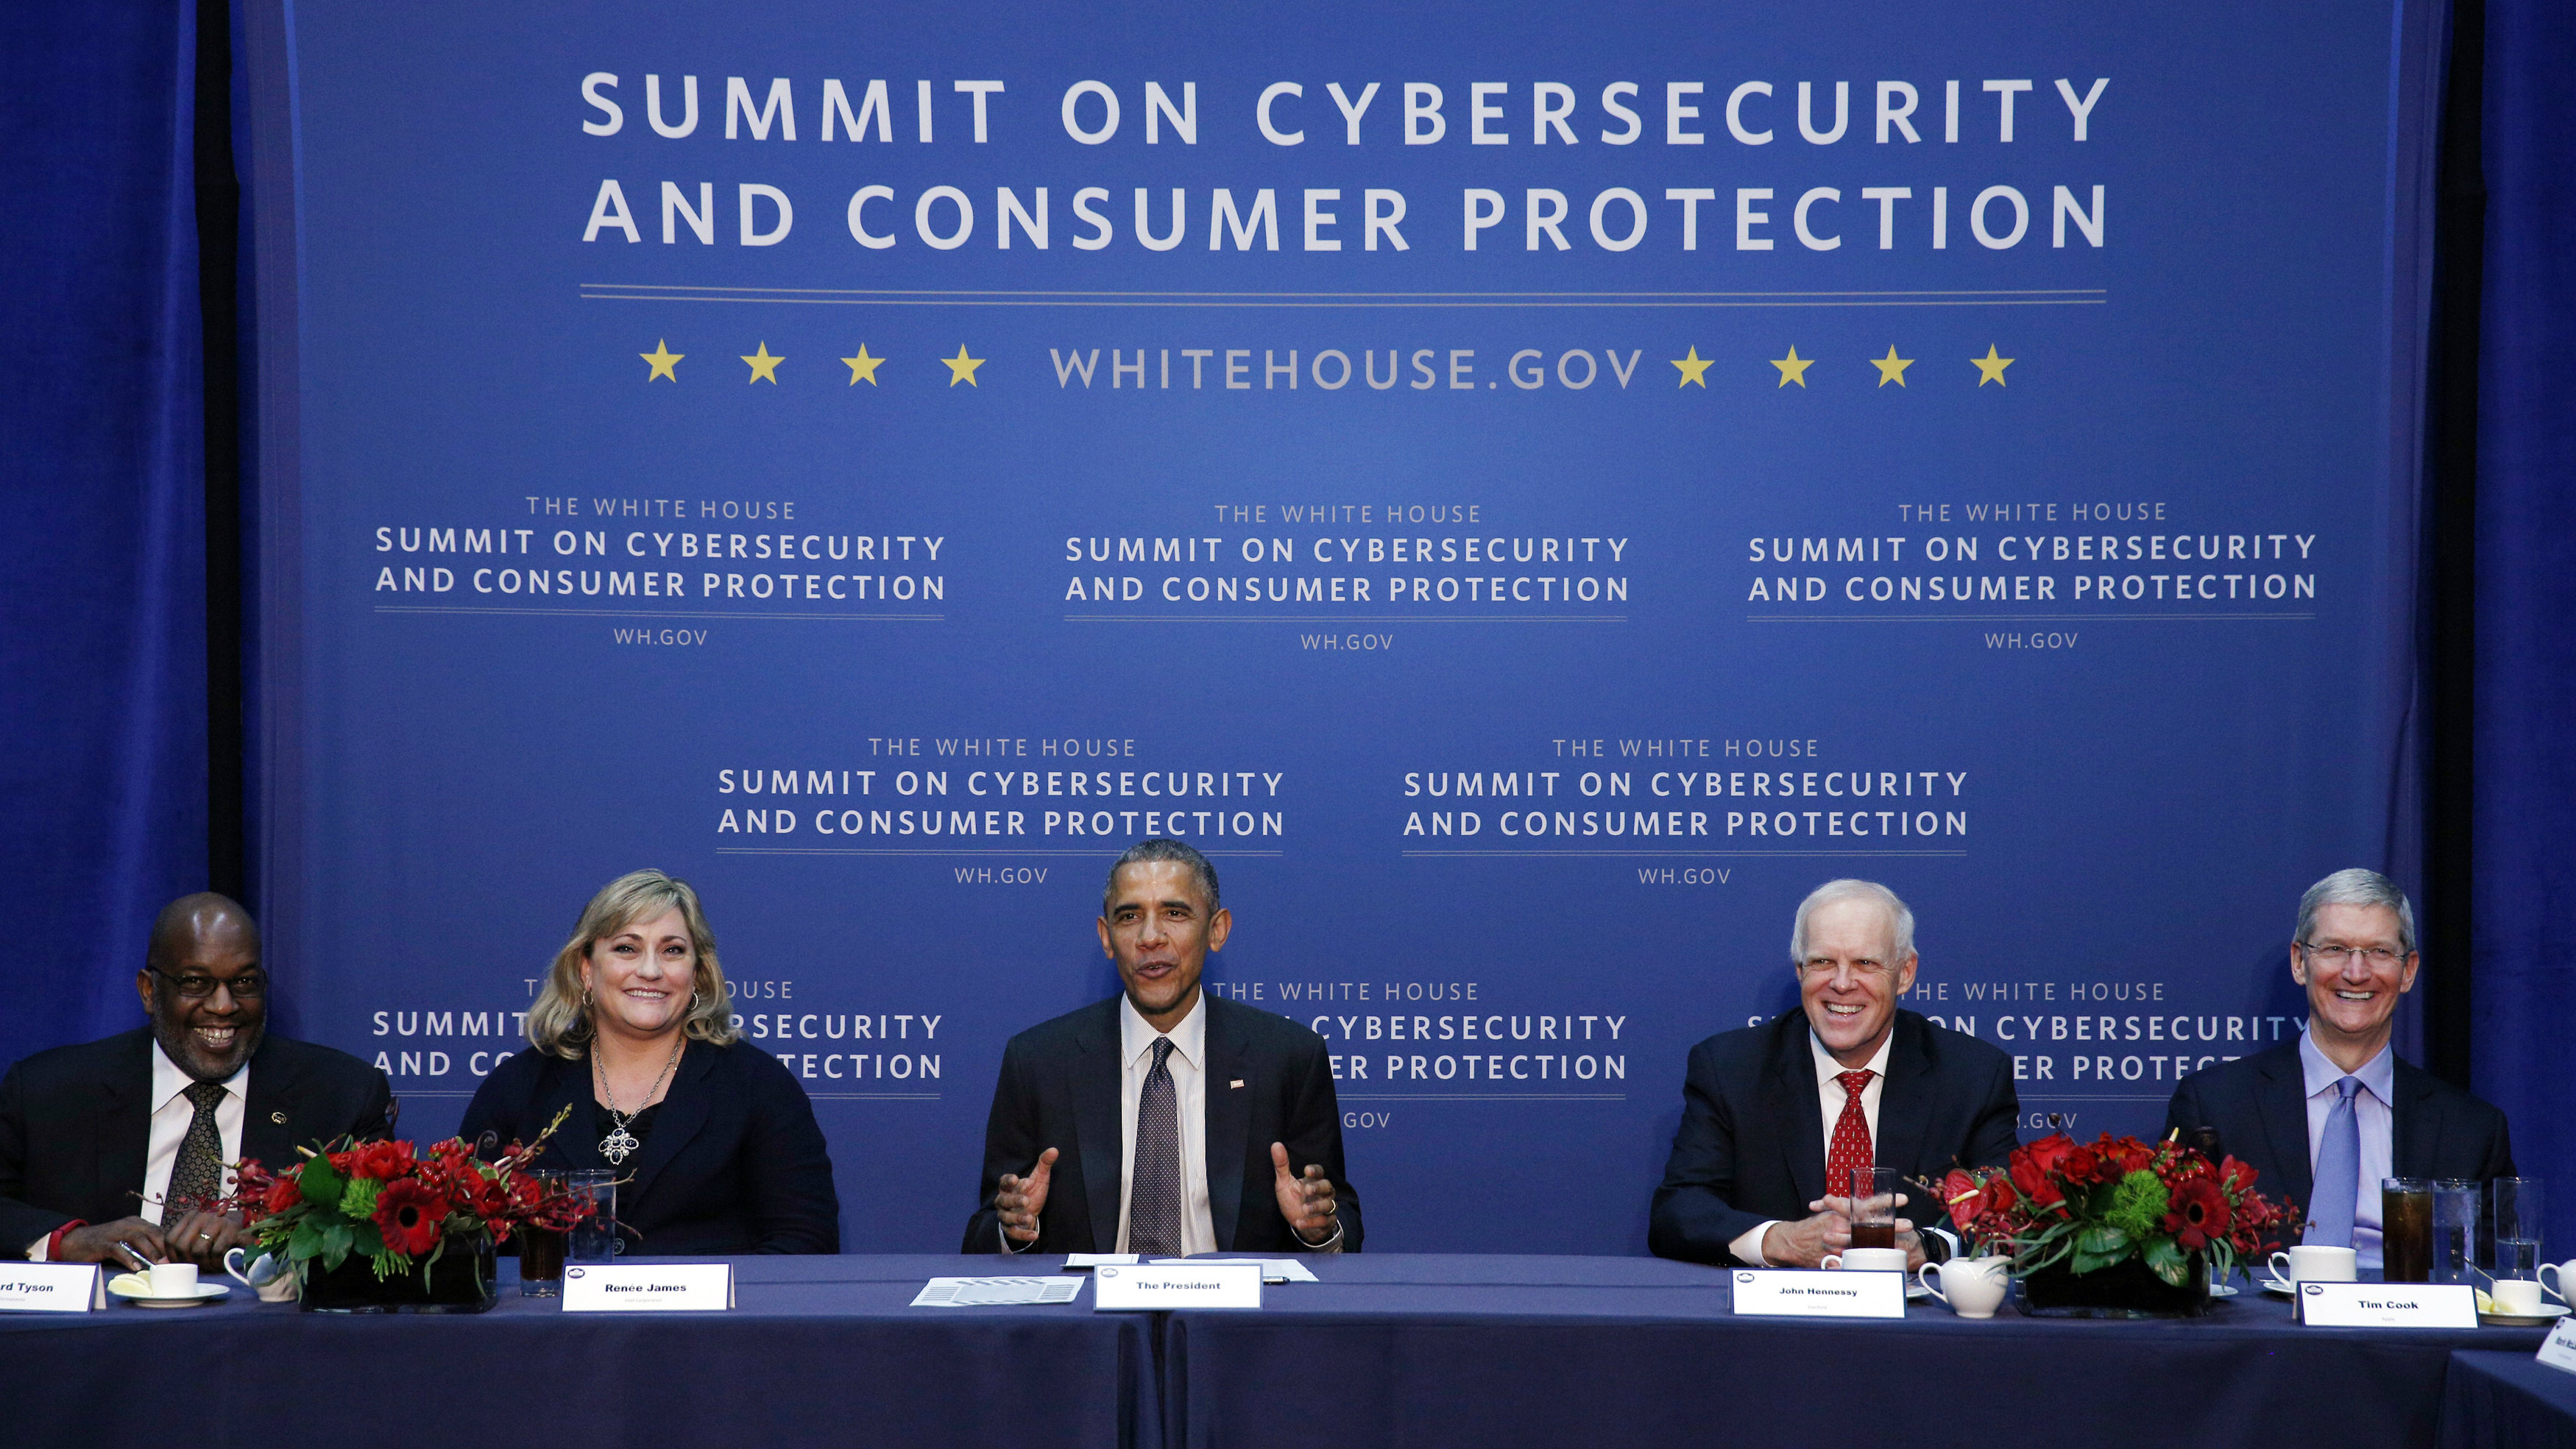 U.S. President Barack Obama holds a round table with business leaders at the Summit on Cybersecurity and Consumer Protection at Stanford University in Palo Alta, California February 13, 2015. From left are Bernard Tyson of Kaiser Permanente, Renee James of Intel, Obama, Stanford University President John Hennessy and Apple CEO Tim Cook. The aim of the summit is to build support for beefing up cyber security laws in the wake of massive hacked at Target, Sony and Anthem. REUTERS/Kevin Lamarque (UNITED STATES - Tags: POLITICS BUSINESS SCIENCE TECHNOLOGY)